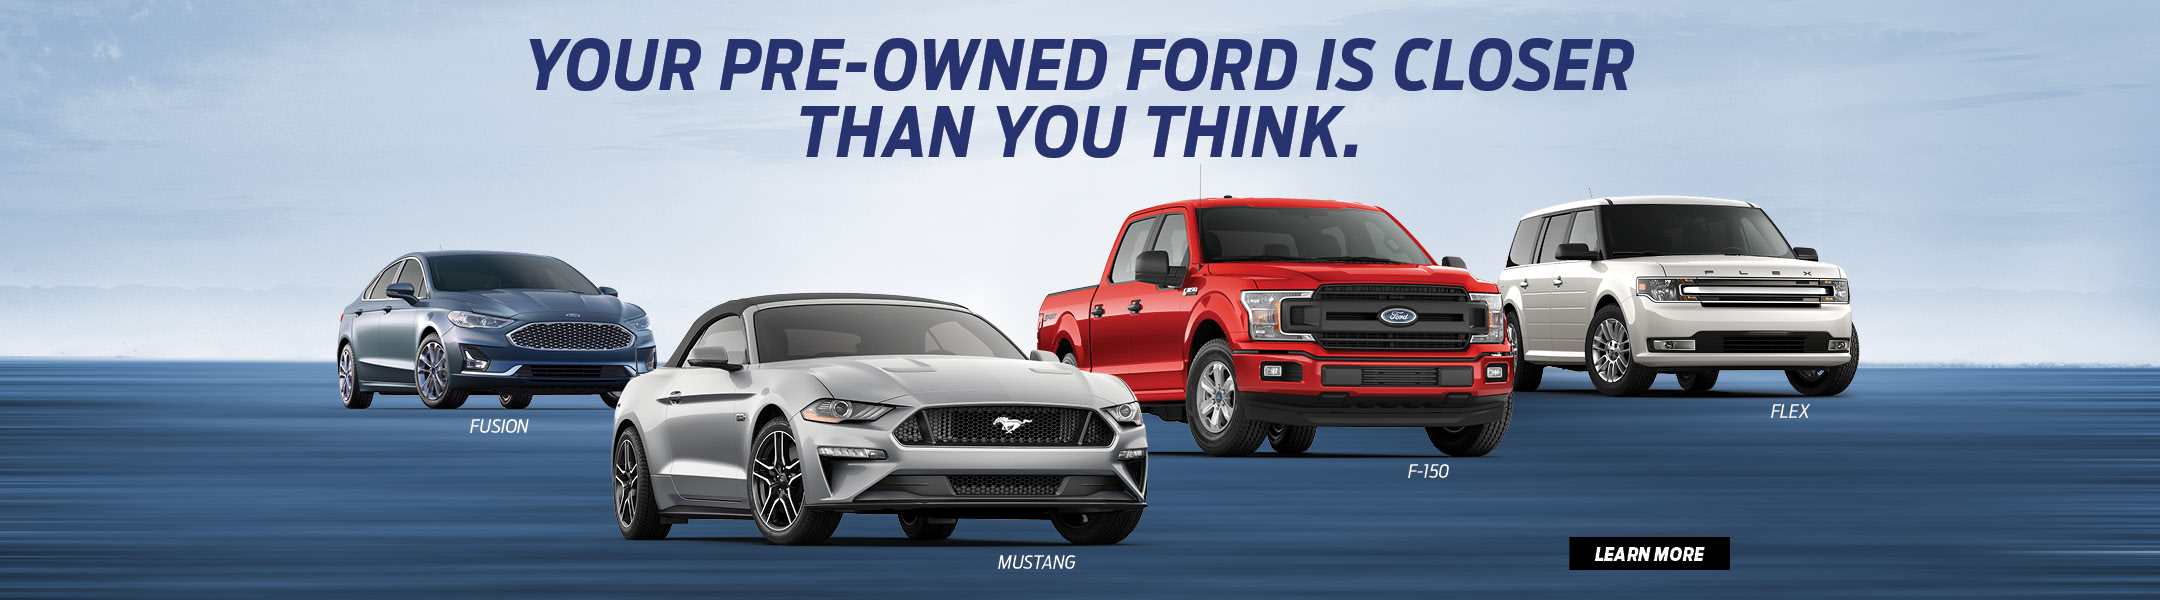 Shop Pre-Owned Ford Inventory